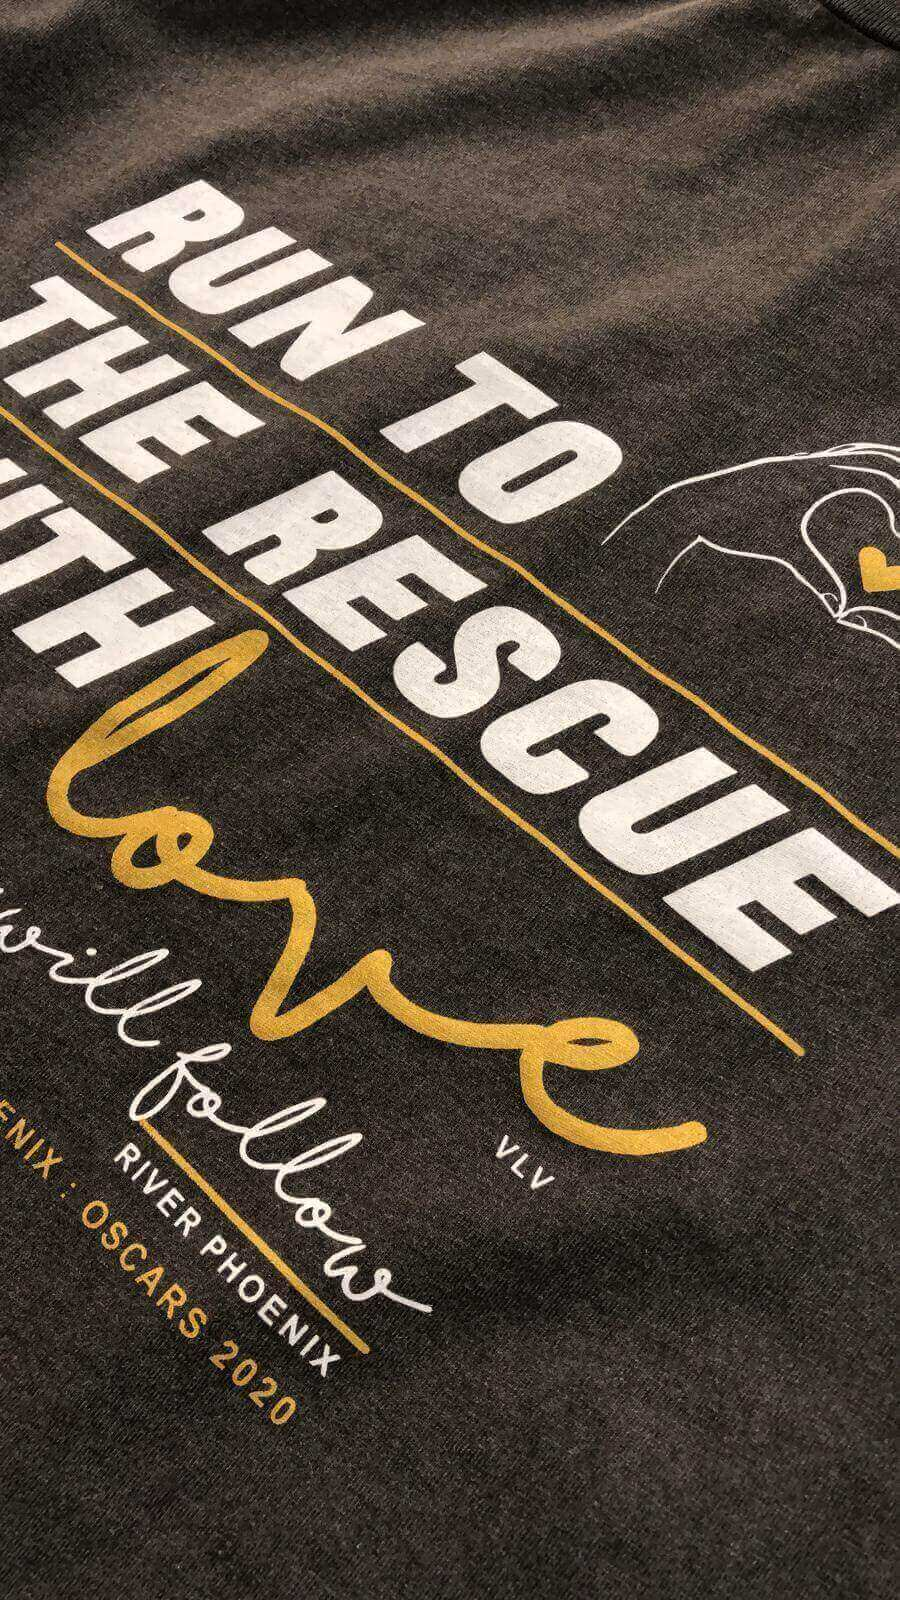 Women's Tshirt : Run To The Rescue With Love